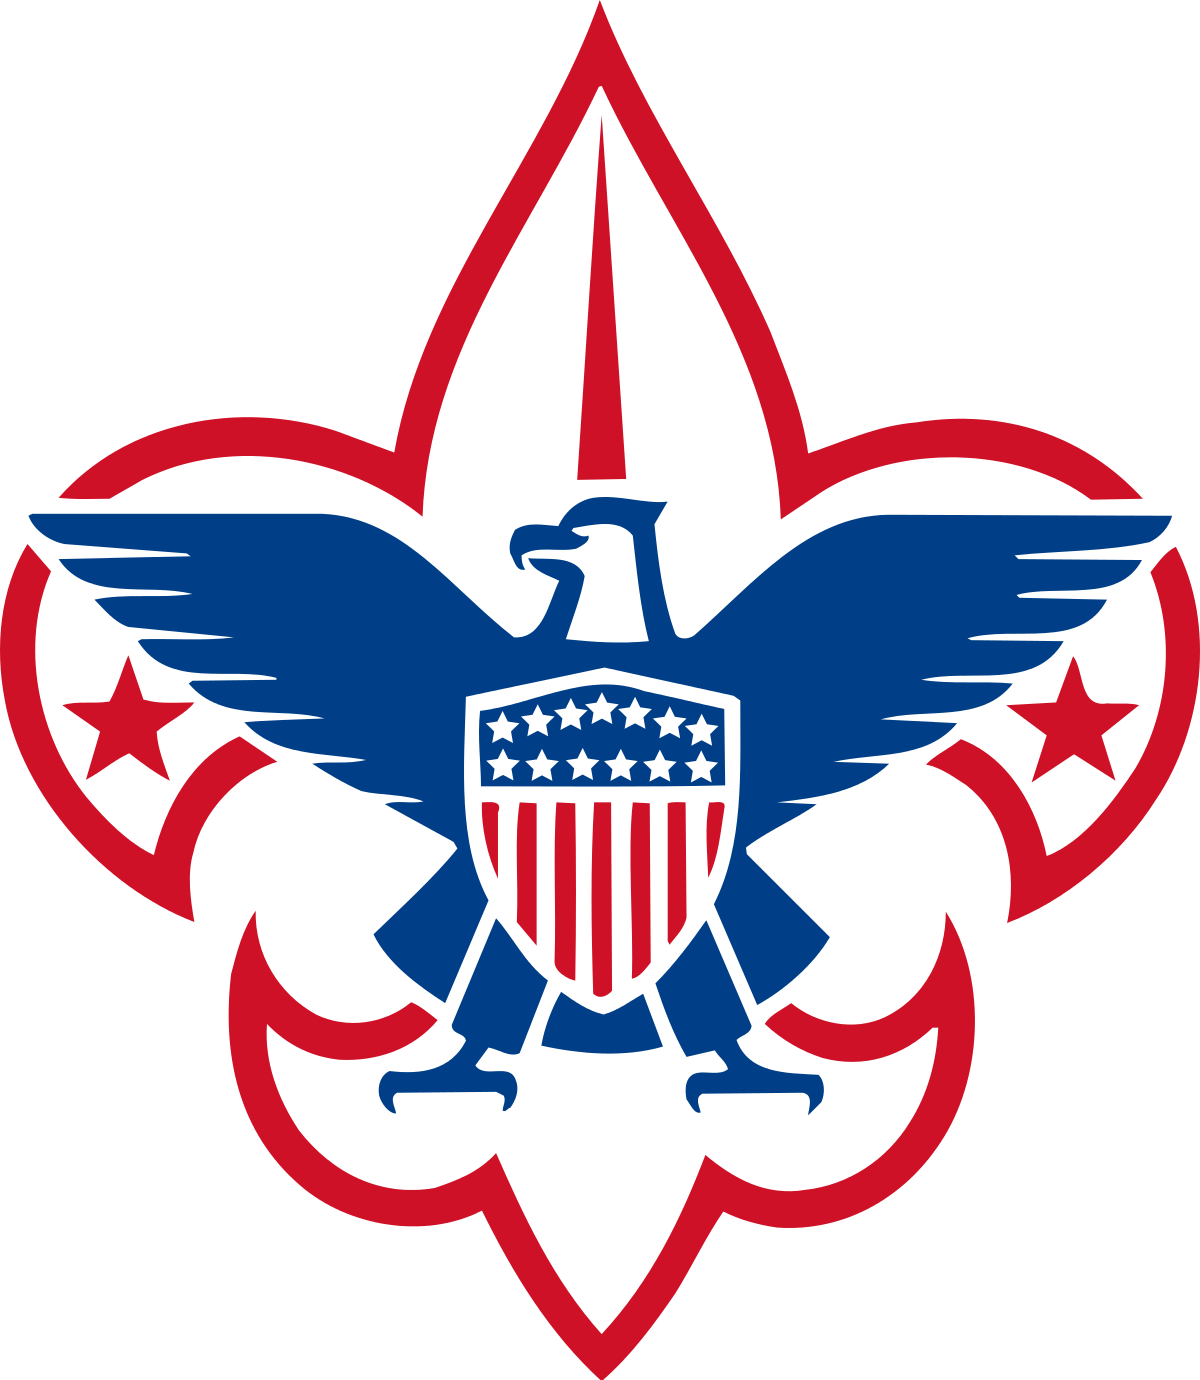 Boy scout star rank clipart graphic library download History of the Boy Scouts of America - Wikipedia graphic library download